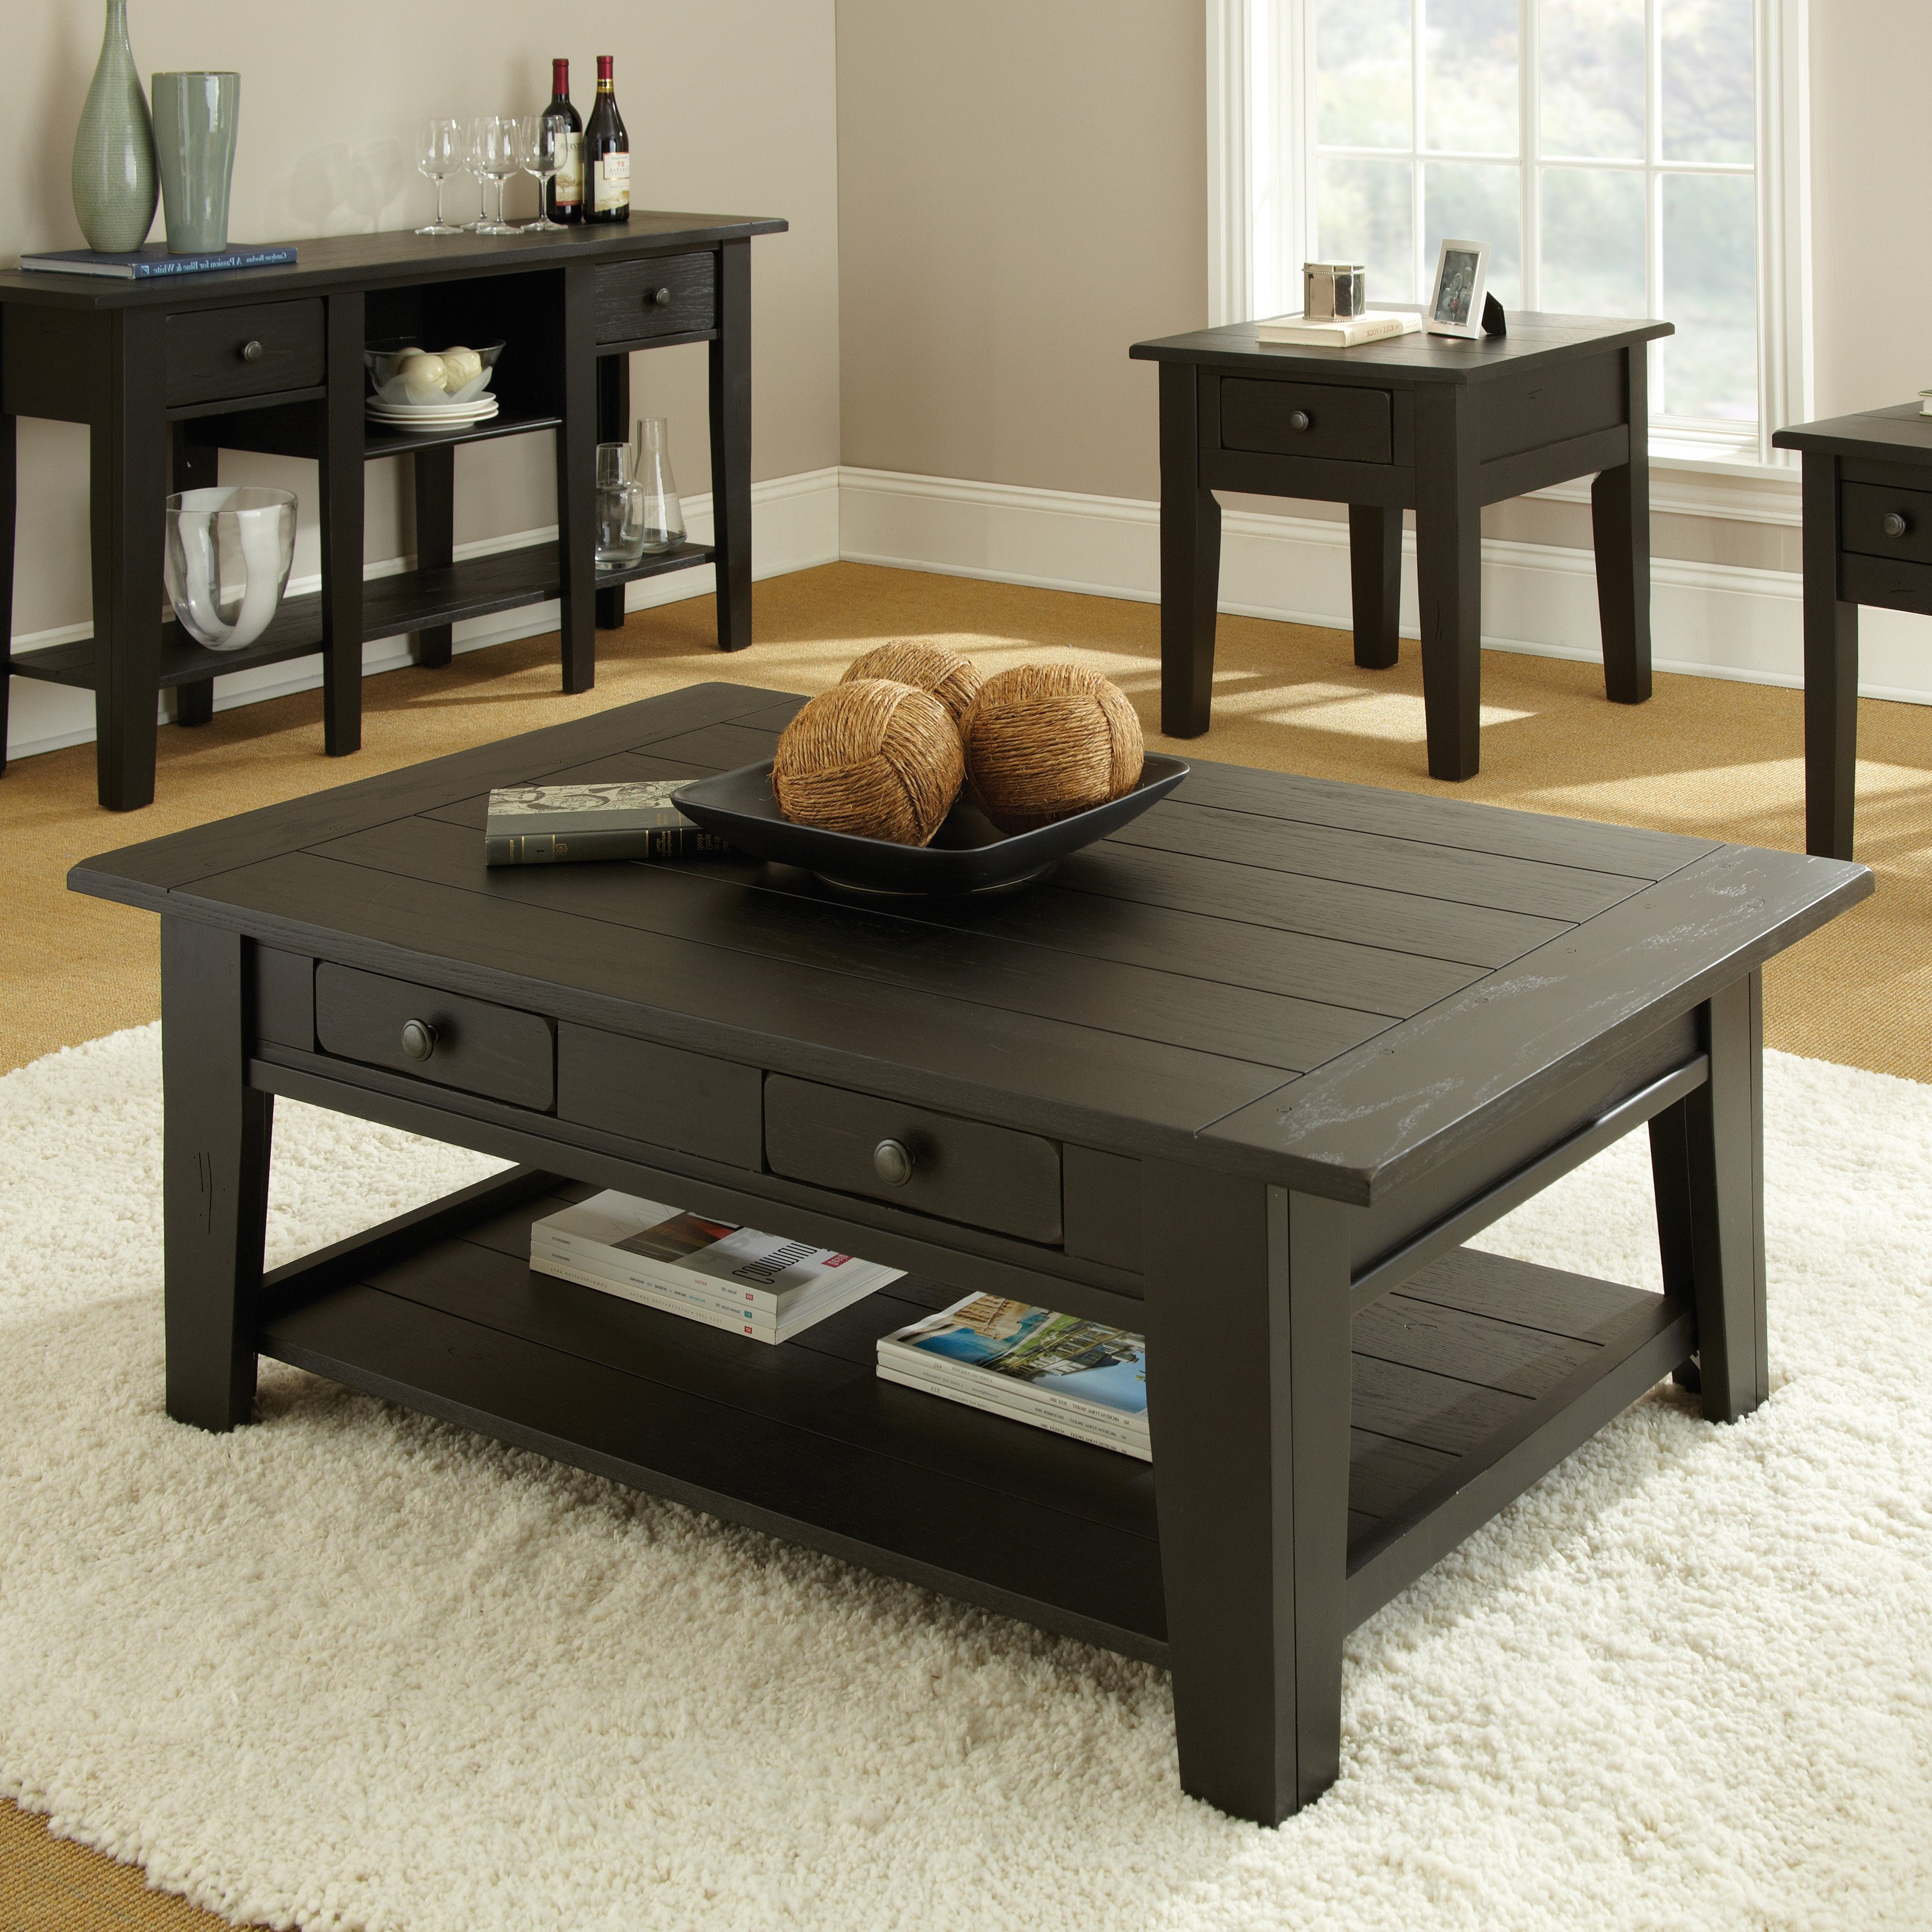 Widely Used Images Of Coffee Tables Elegant Kai Small Coffee Table With Kai Small Coffee Tables (Gallery 9 of 20)